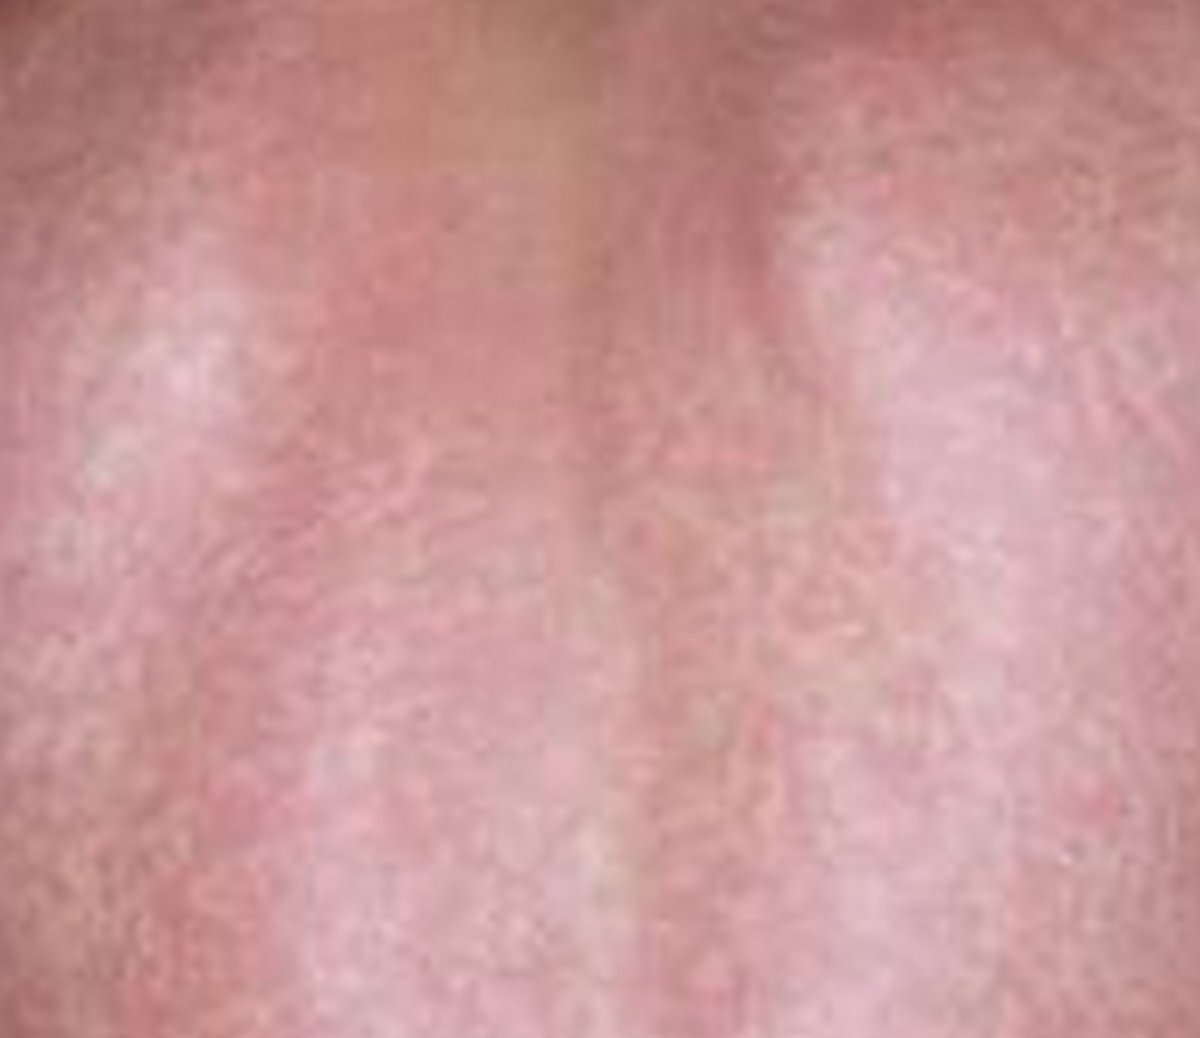 lamictal-rash-symptoms-treatment-images